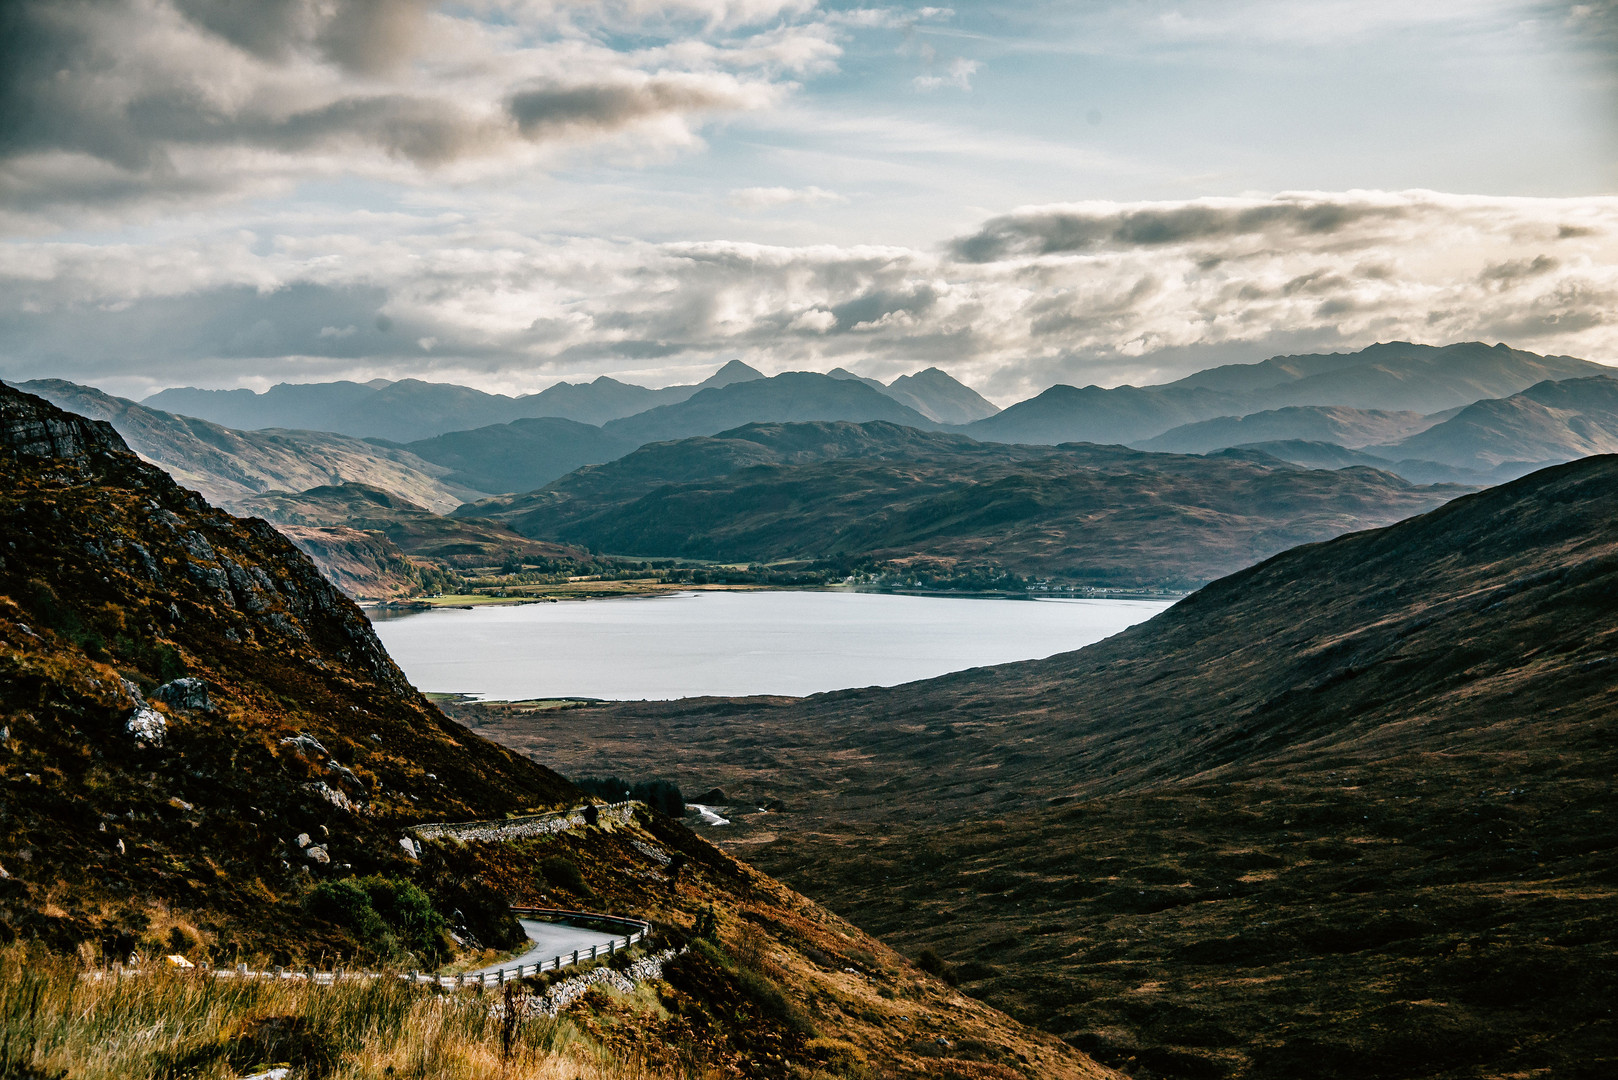 Looking to Glenelg from Kylerhea Pass